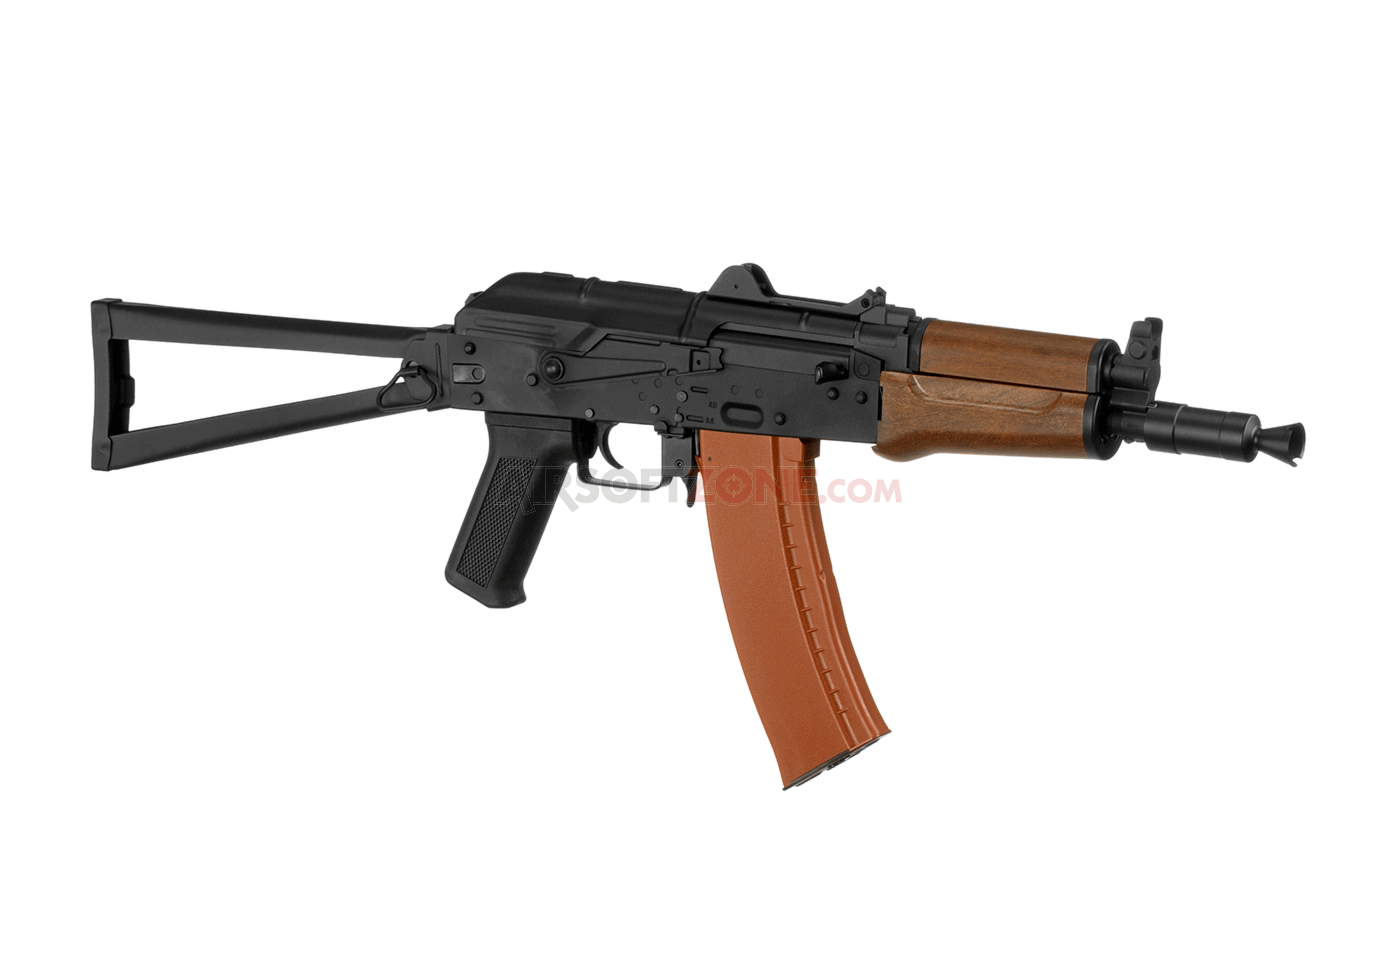 aks74u full metal cyma aeg airsoft aeg rifles online shop. Black Bedroom Furniture Sets. Home Design Ideas